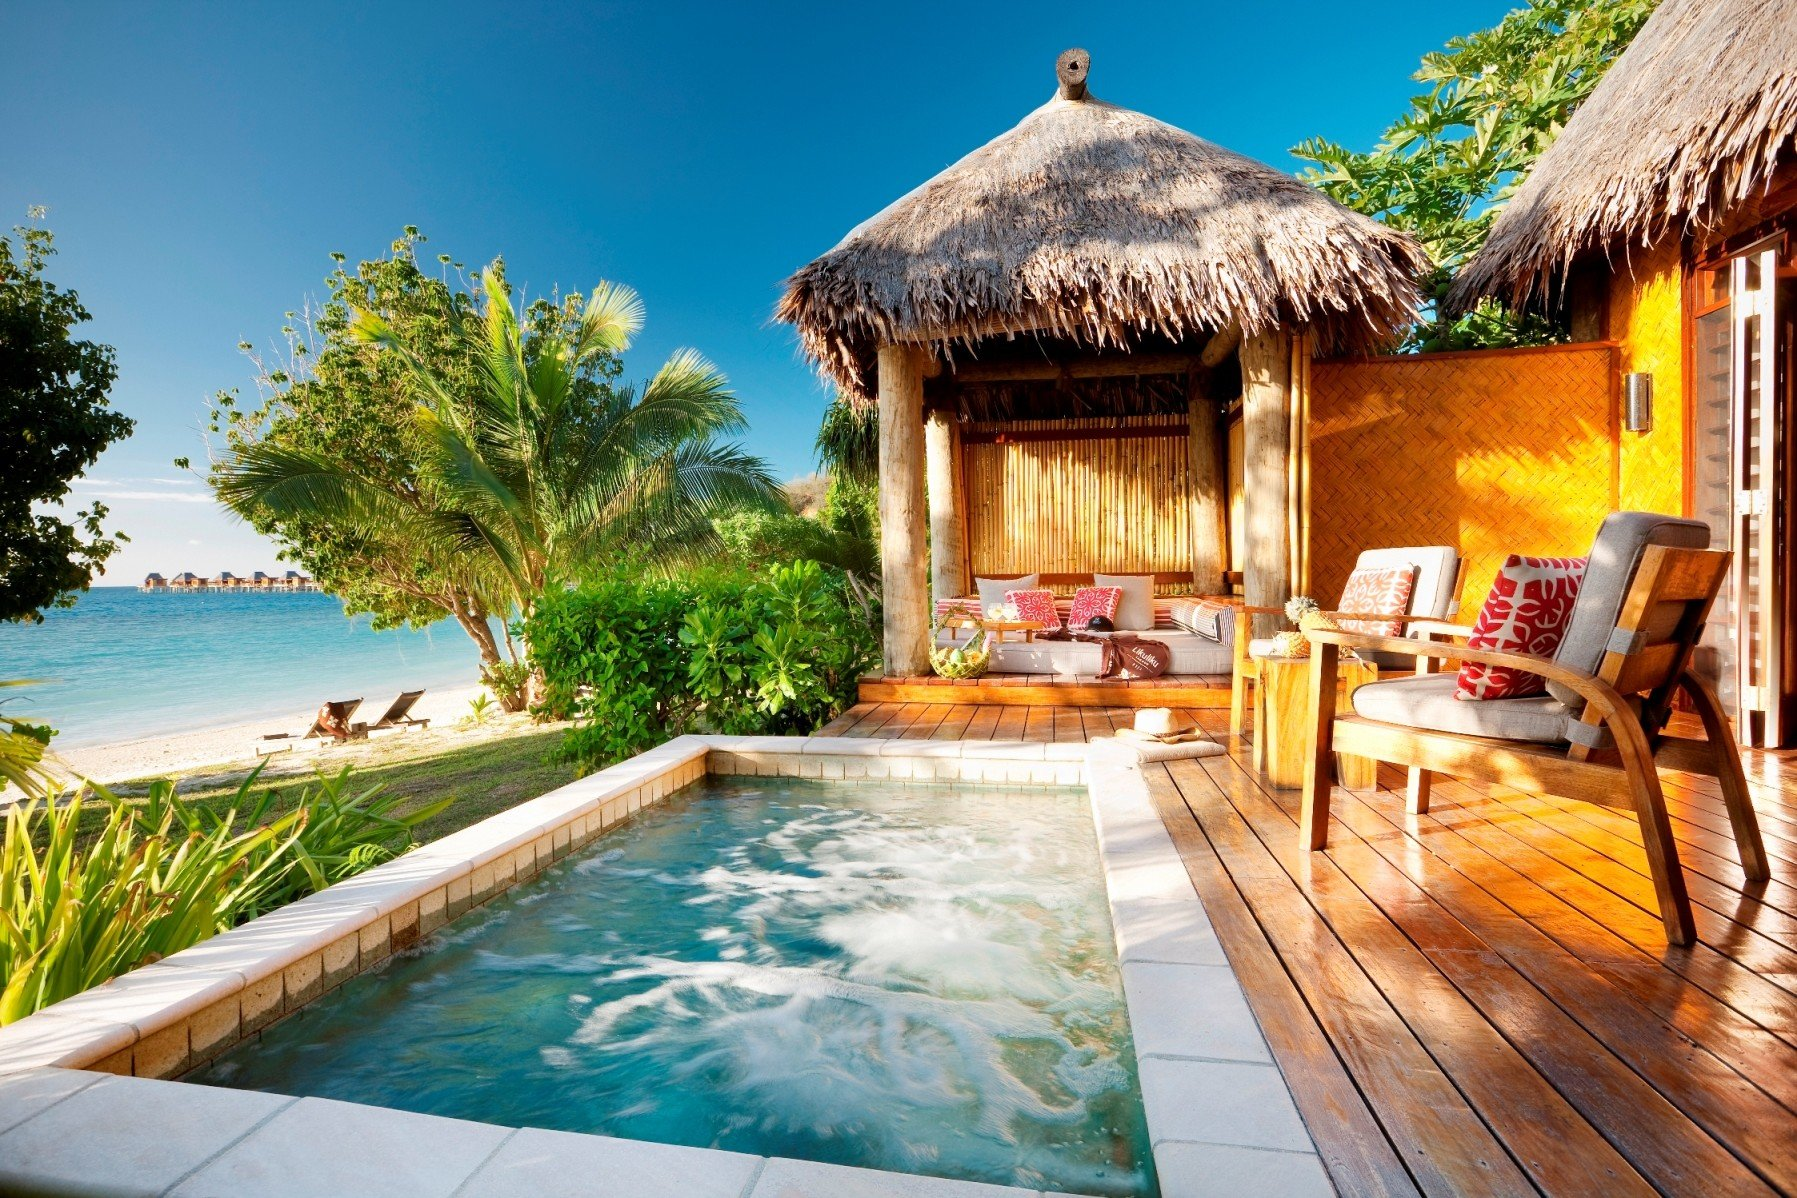 All-Inclusive Resorts Boutique Hotels Hotels Romance tree outdoor Resort property building swimming pool estate leisure real estate Villa vacation home cottage palm tree tropics arecales Pool outdoor structure house backyard hacienda caribbean resort town amenity furniture